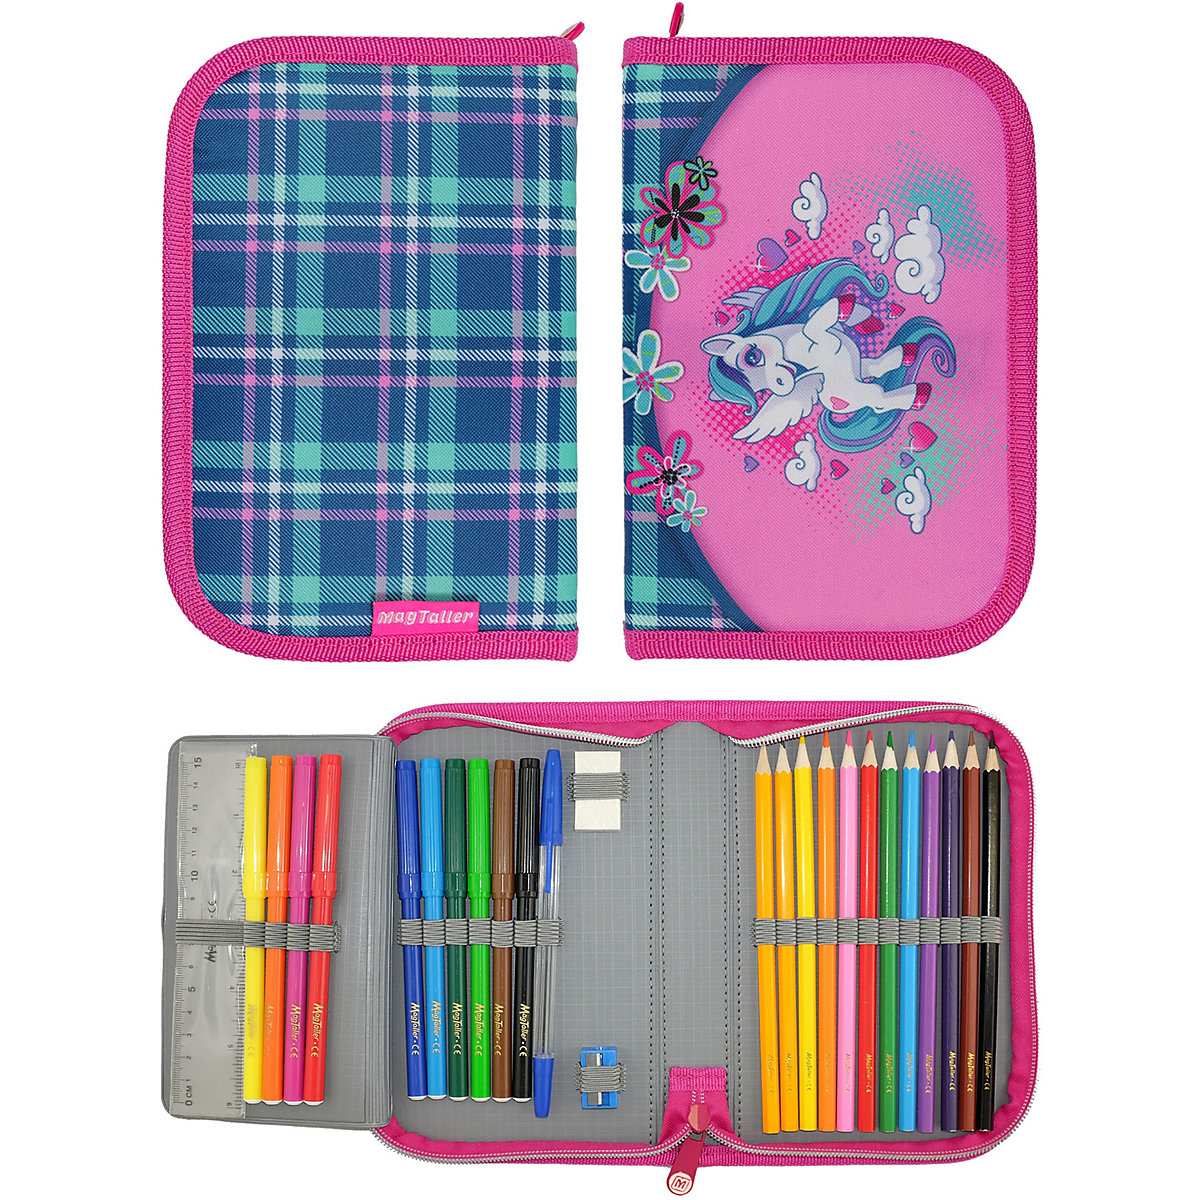 Pencil Cases MAGTALLER 11154930 school supplies stationery pencil cases for girls and boys drawing a5 dokibook notebook candy color agenda planner organizer diary with rope gift notepad stationery office school supplies